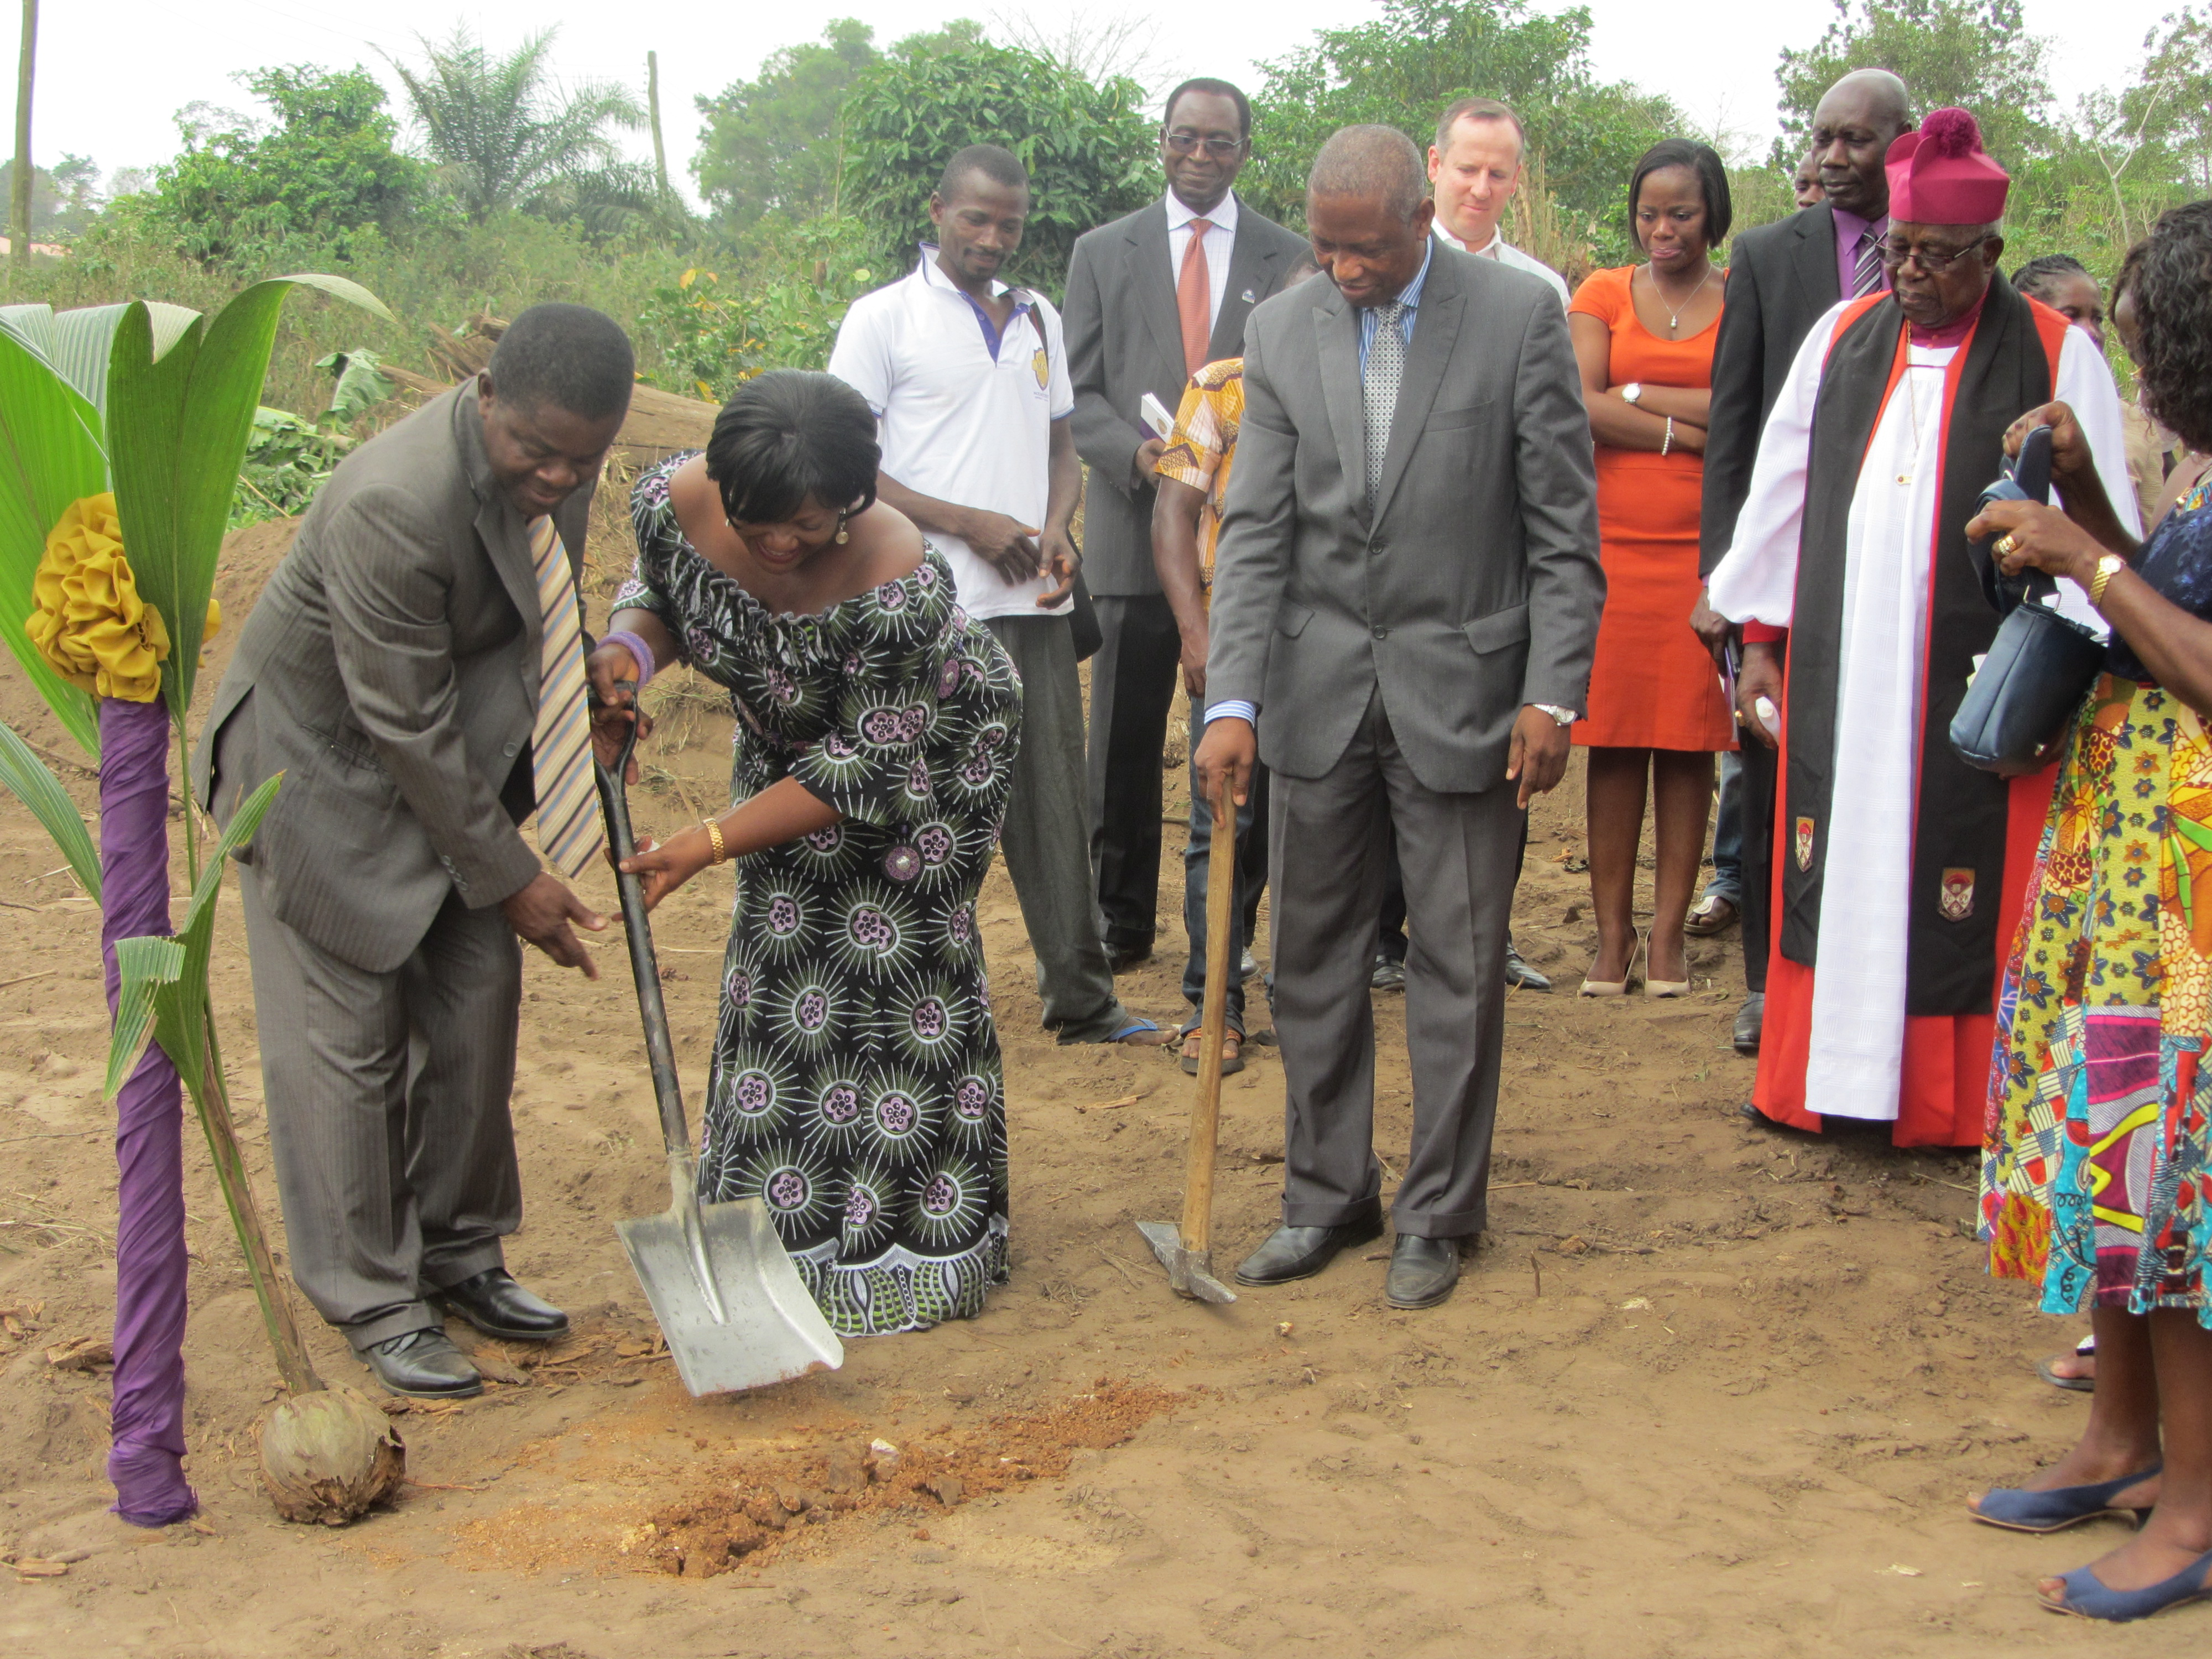 Kwaku Ansa-Asare and Helena Ansa-Asare, founders of MountCrest University School. The school's teaching hospital will be named after their son, Kwame Ansa-Asare, who died in 1999 at the age of 19 from leukemia.